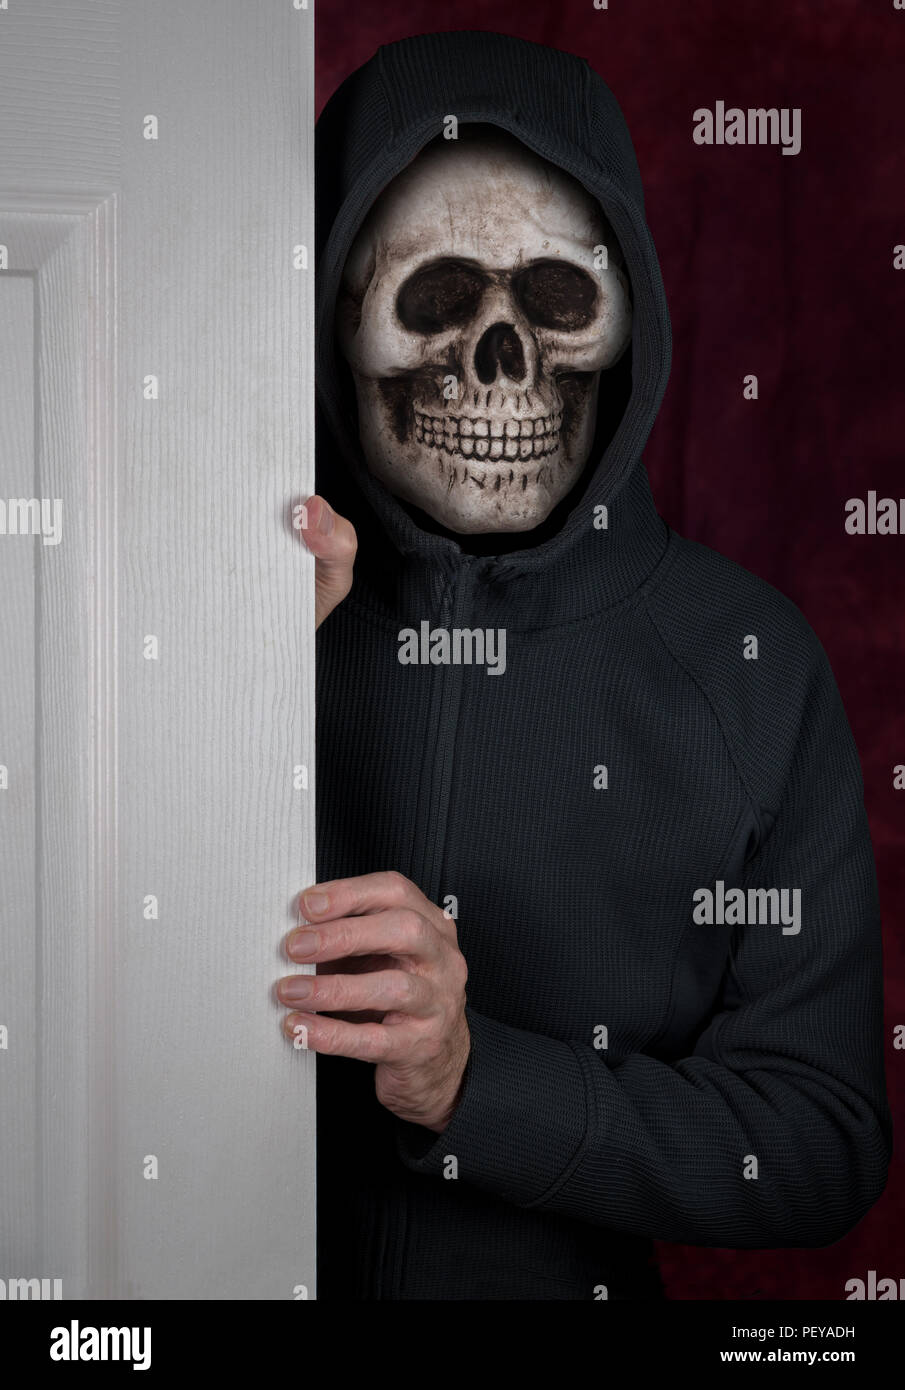 Halloween theme of stalker with skull mask entering a home - Stock Image